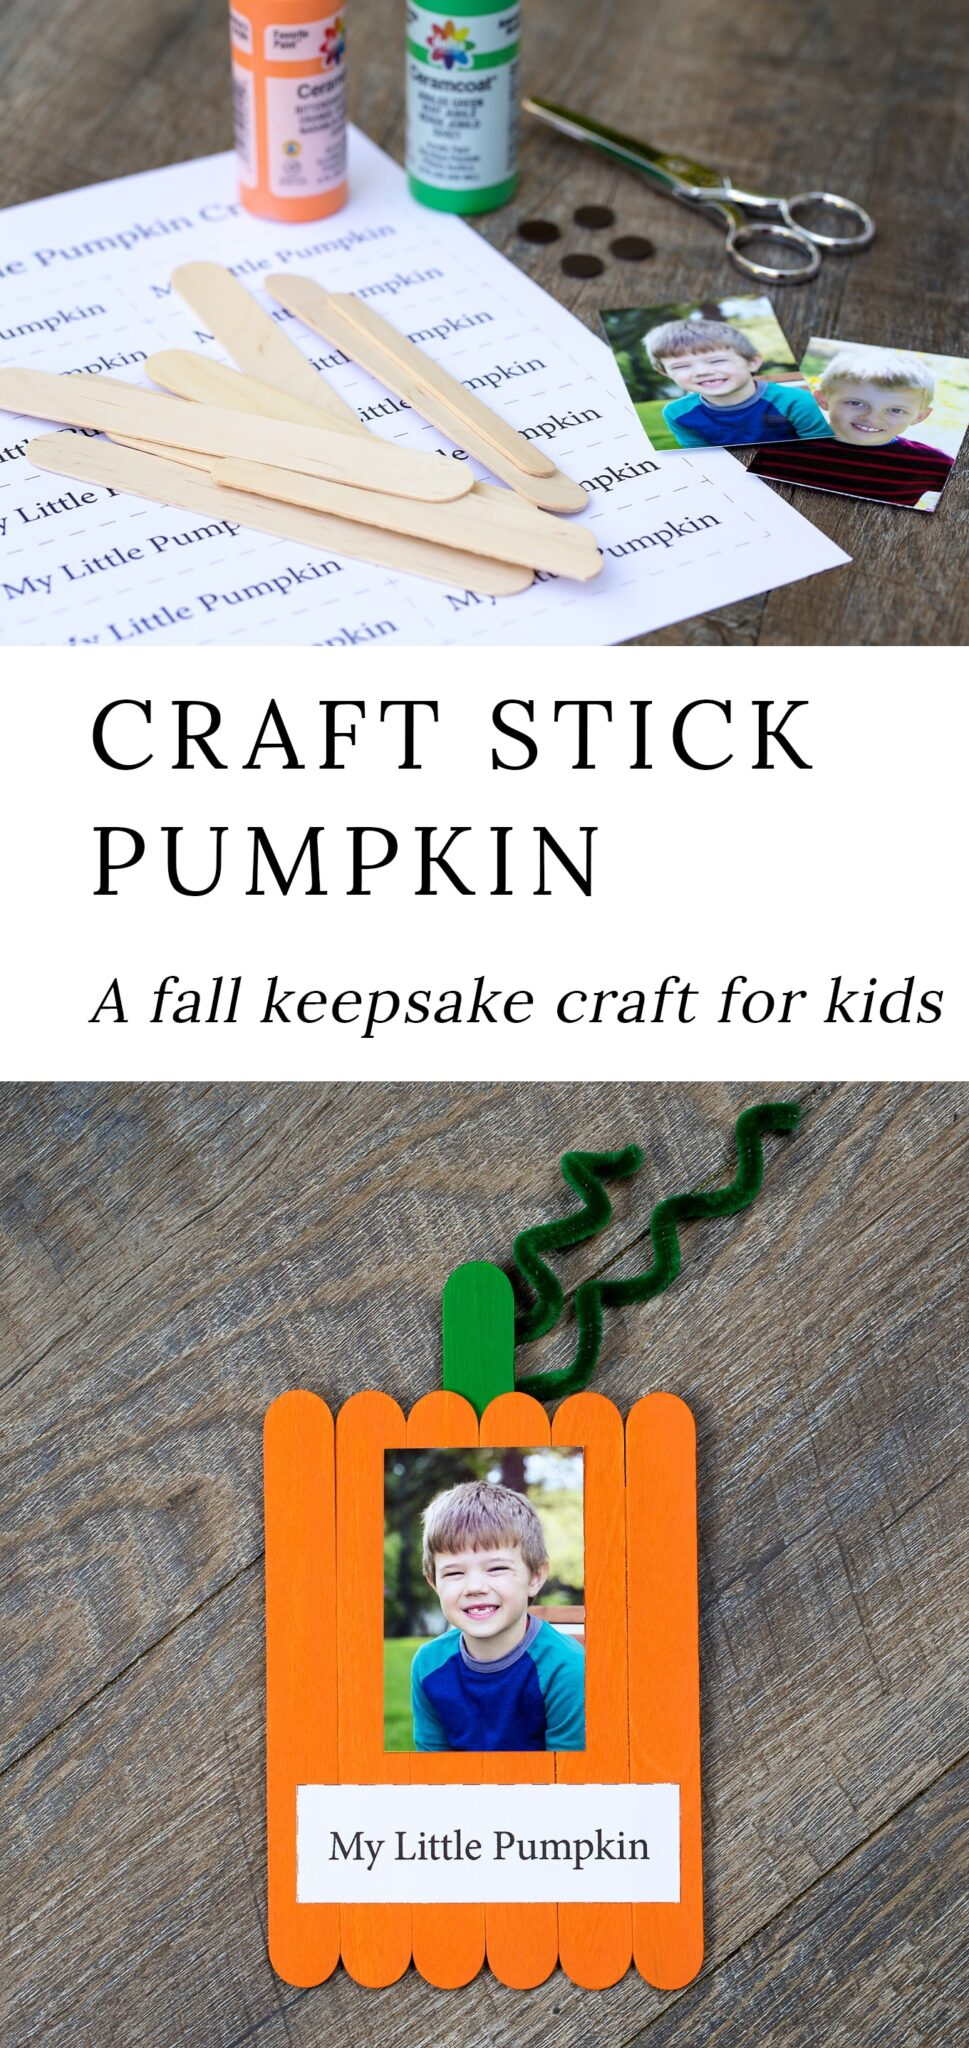 Just in time for fall, learn how to make an adorable Popsicle stick pumpkin keepsake with craft sticks, paint, and glue.  via @firefliesandmudpies